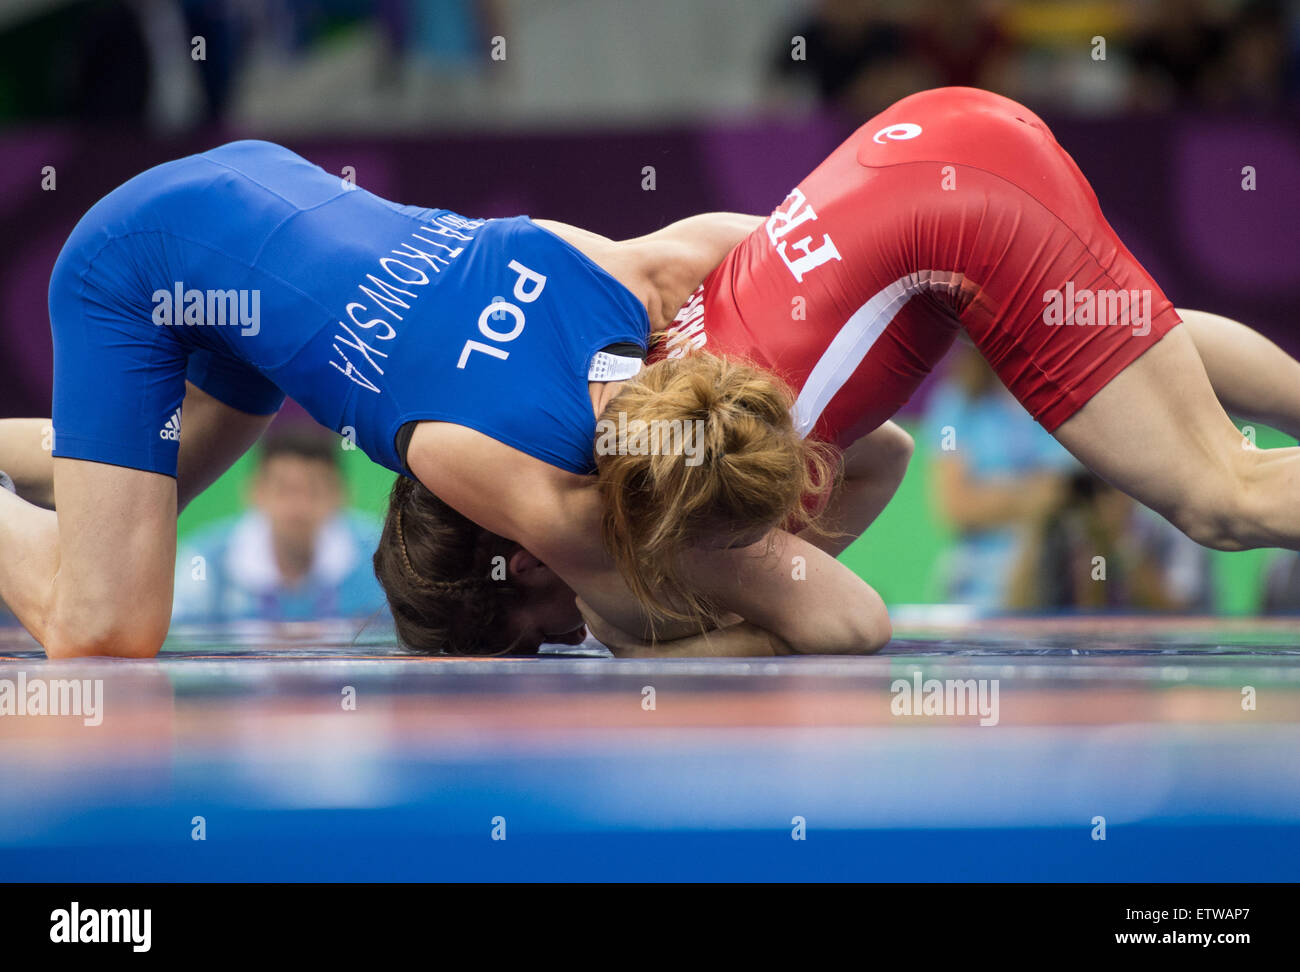 Julie Sabatie (red) of France and Iwona Matkowska (blue) of Poland compete in the women's Freestyle 48kg wrestling - Stock Image